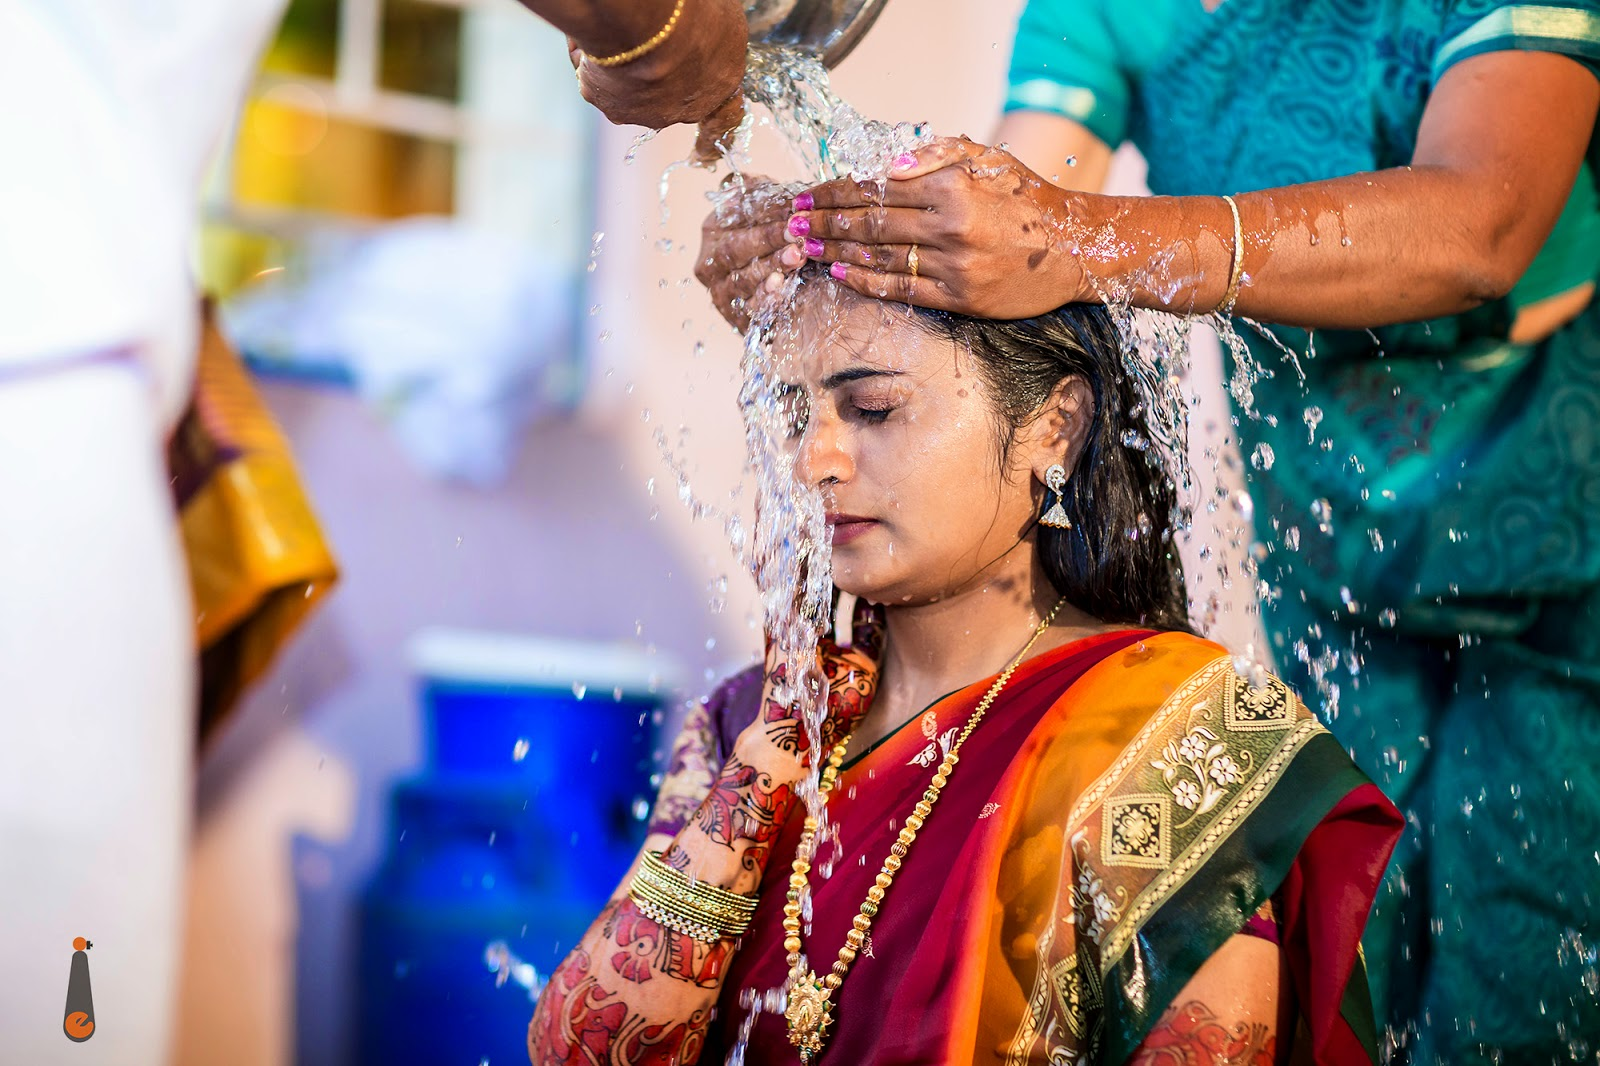 kongu gounder Find hundreds of suitable matches on kongu vellalar gounder matrimony contact matches for just rs 100 only matchfinder is the best matrimonial website for kongu vellala gounder community.